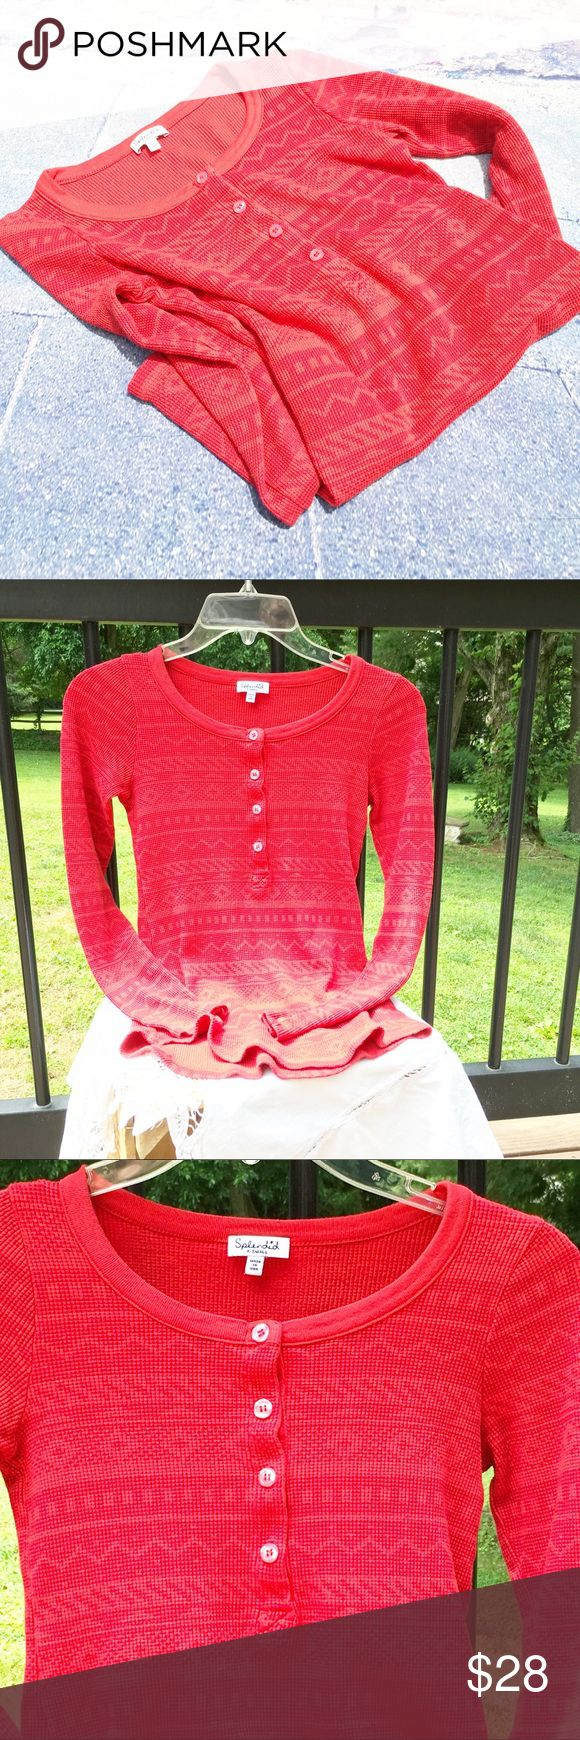 "SPLENDID Red Long Sleeve Top, Size XS SPLENDID Red Long Sleeve Top, Size XS Red patterned laying tee (or not).  Fabric is 48/48/4, cotton/modal/Spandex.  Underarm to underarm measures 14"" and length is 20"".  17"" sleeve length measured from underarm. Splendid Tops Tees - Long Sleeve"